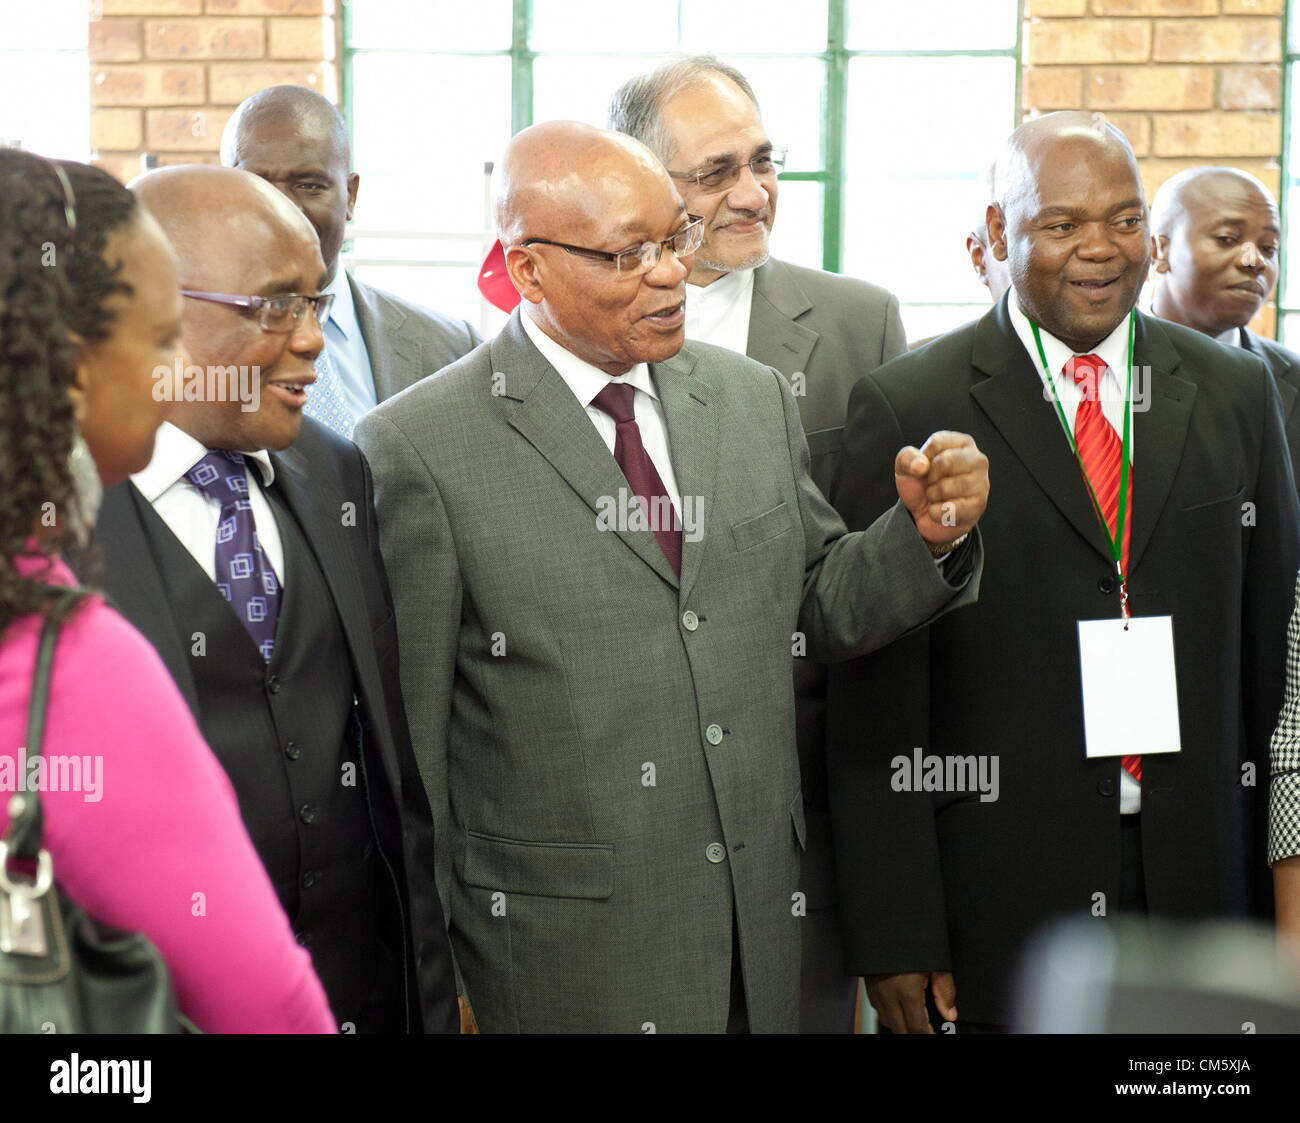 PRETORIA, SOUTH AFRICA: President Jacob Zuma and Health Minister Aaron Motsoaledi during the launch of a school - Stock Image